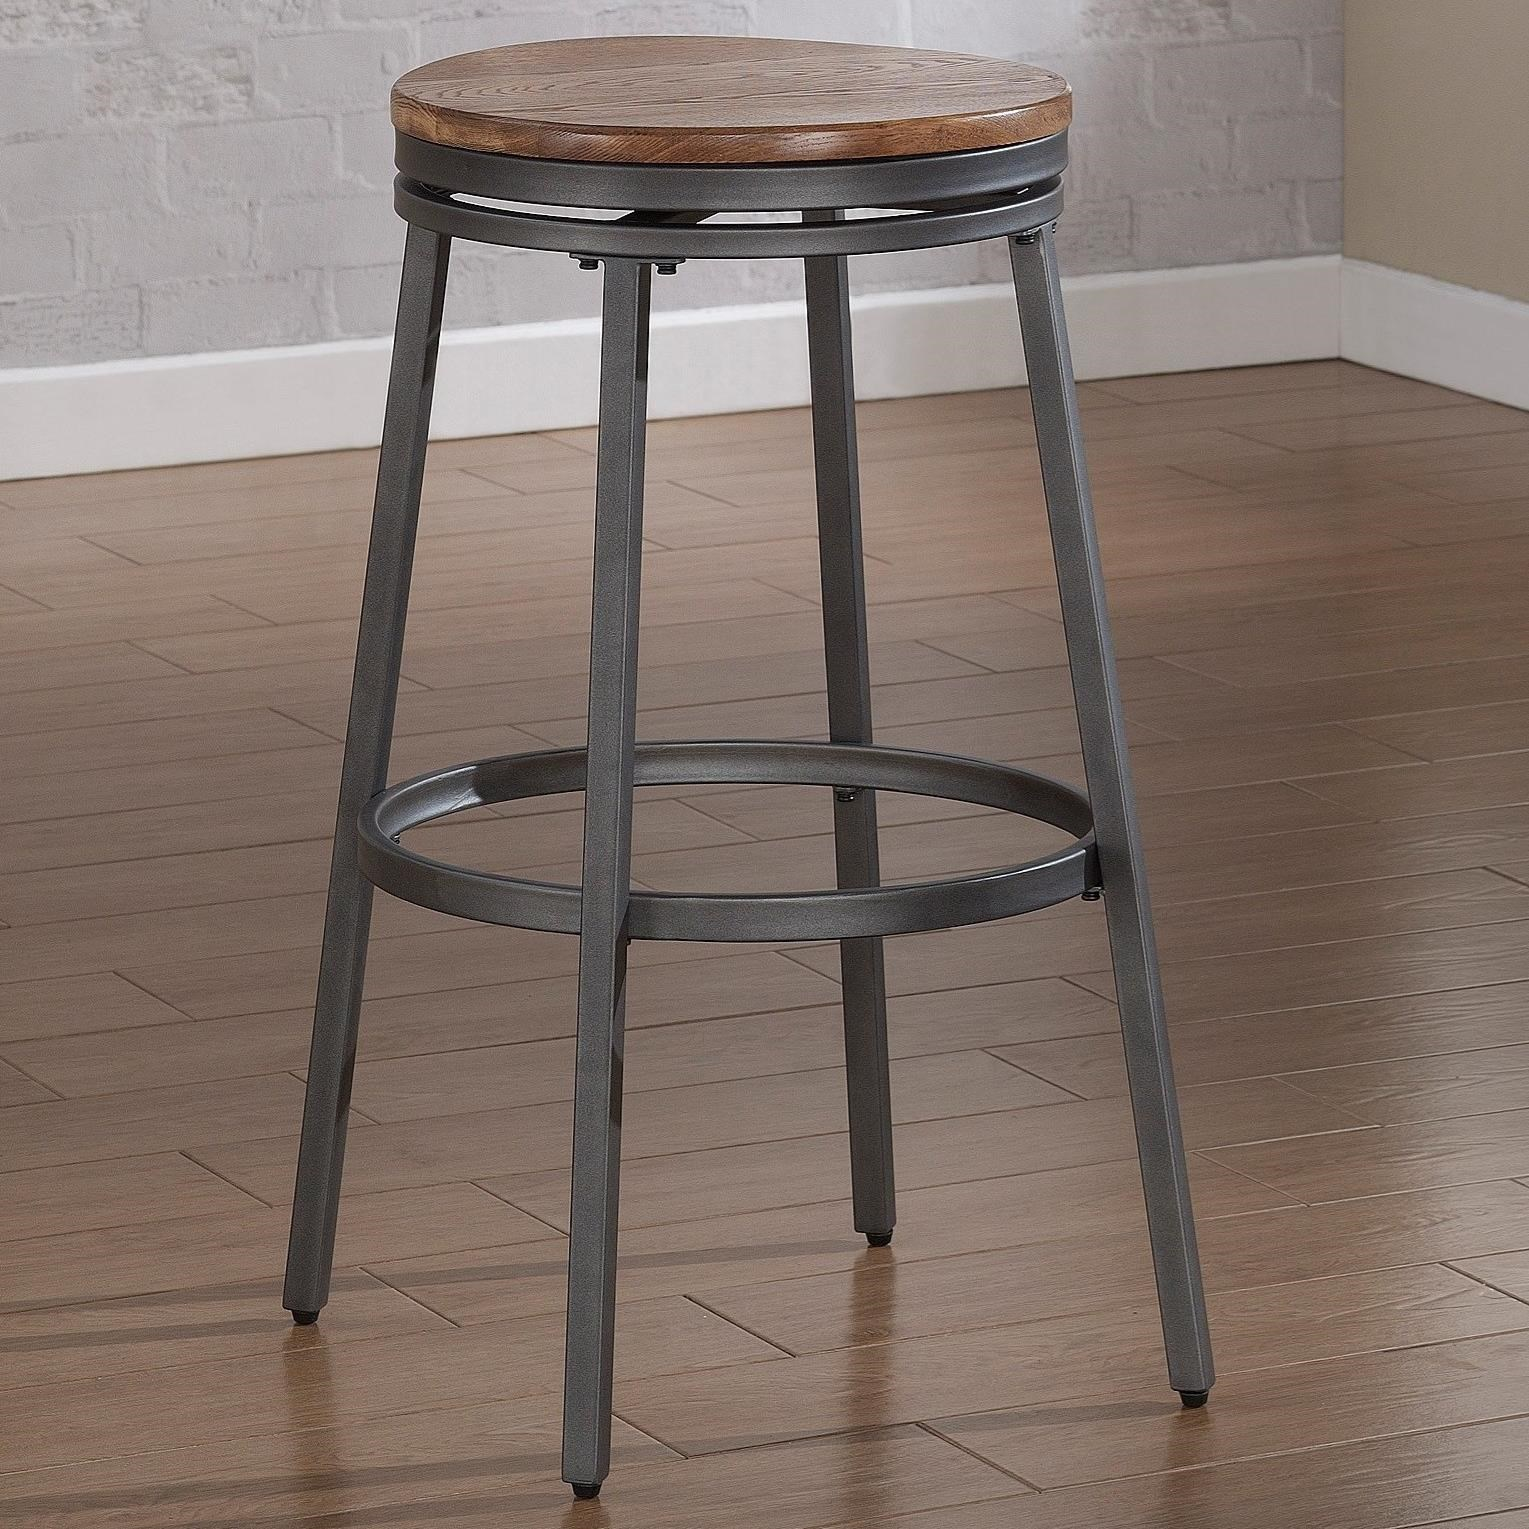 American Woodcrafters Barstools Backless Stool with Metal Frame - Item Number: B1-100-25W